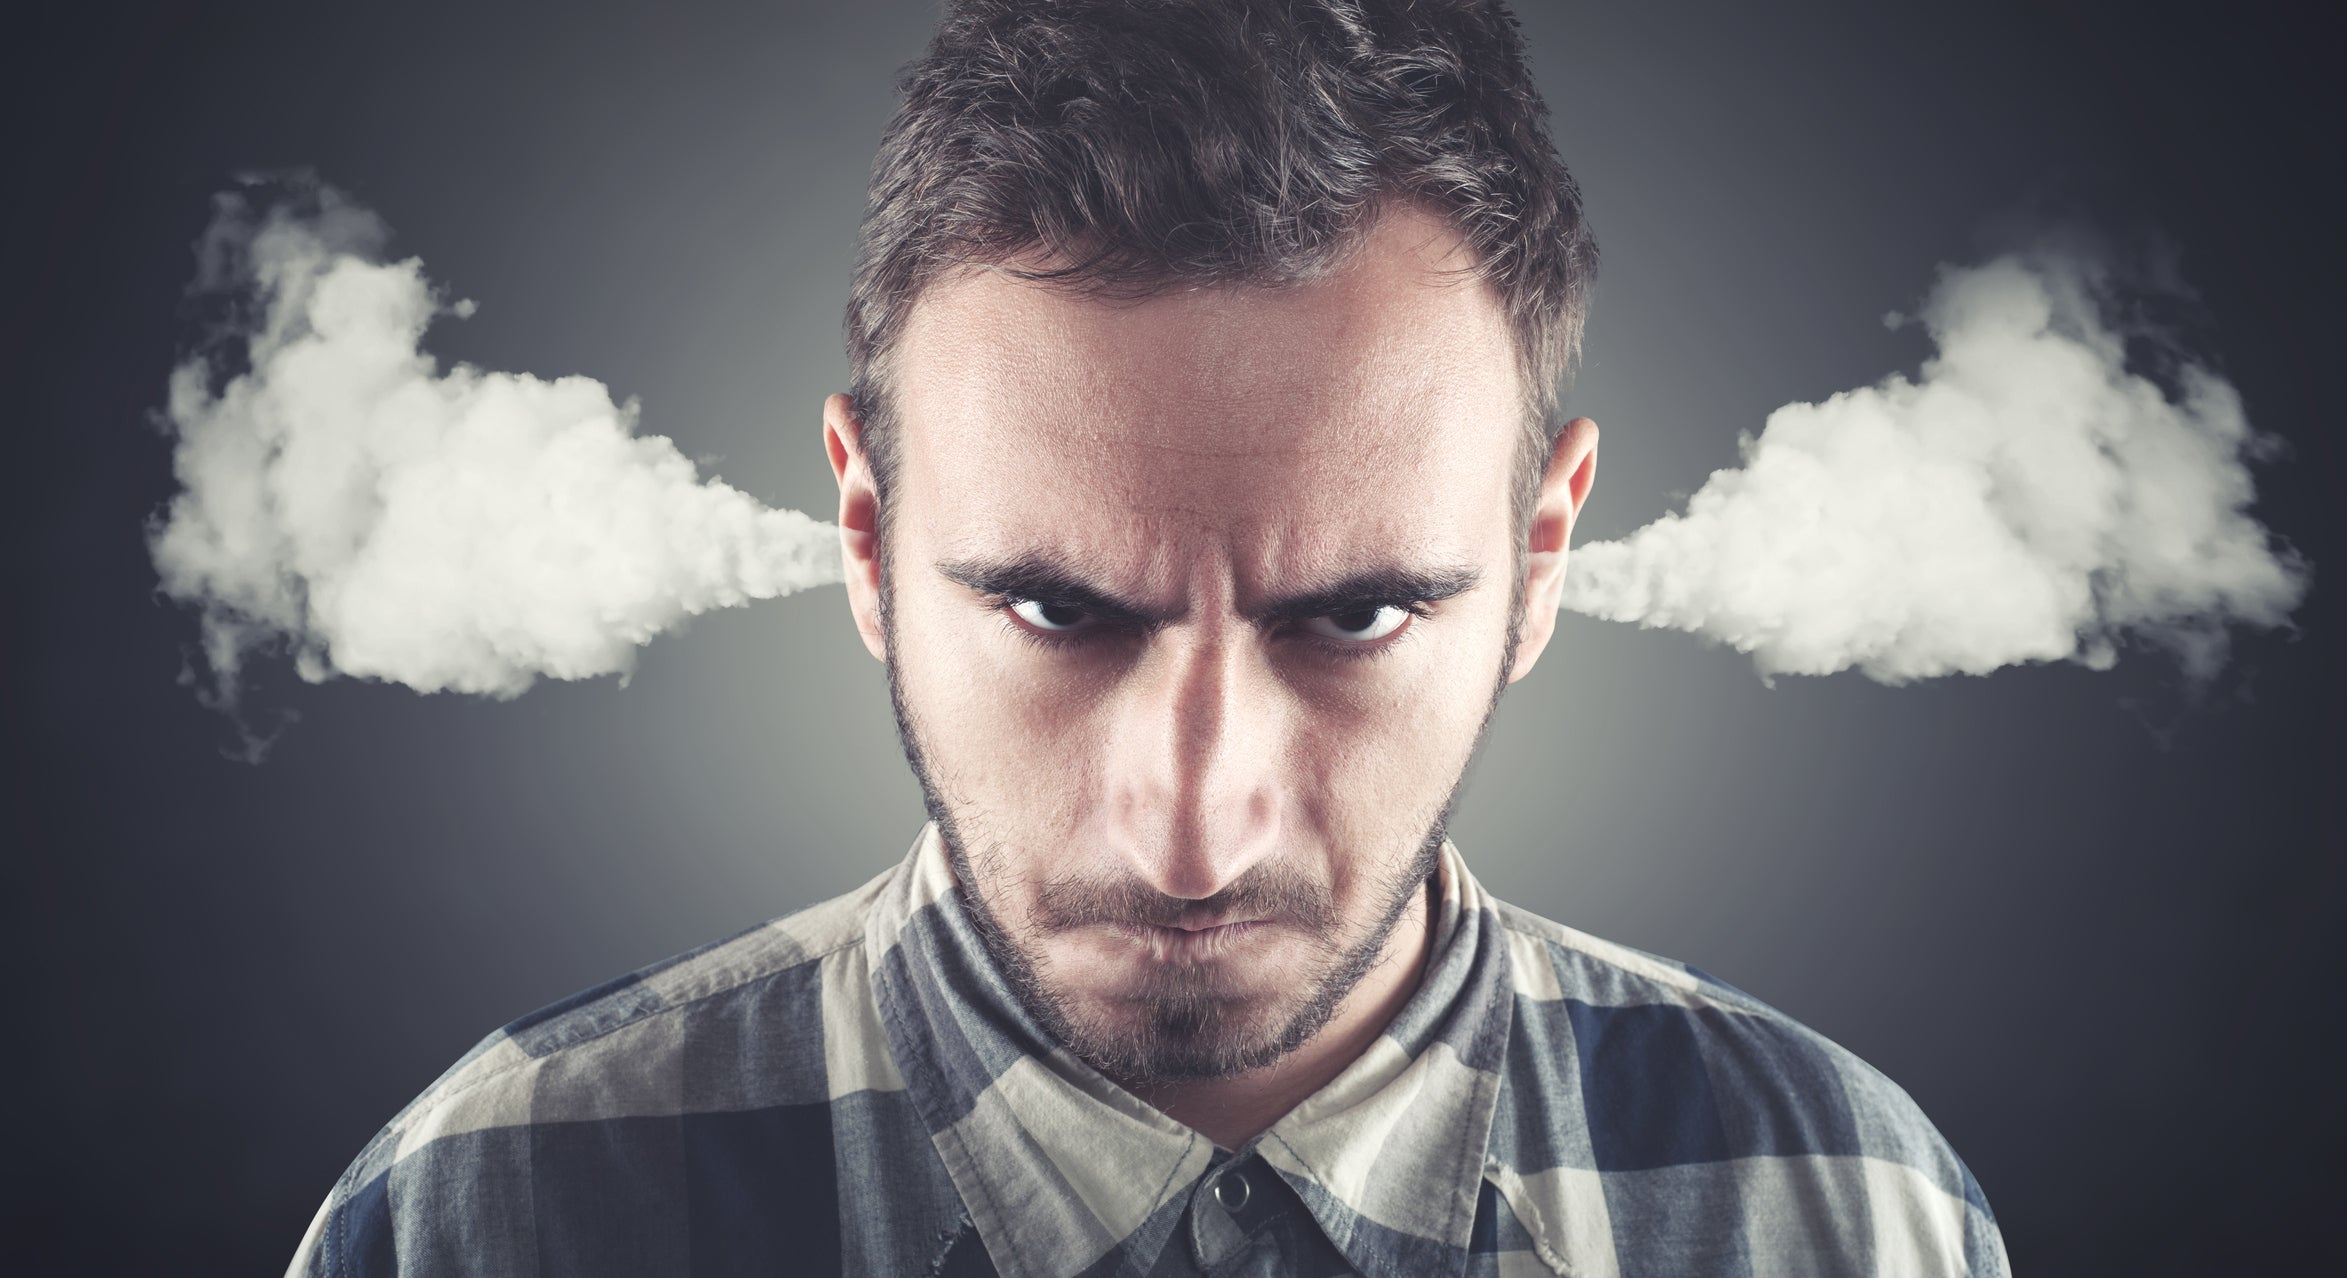 An anger management expert's guide to identifying sources of rage and how to deal with it